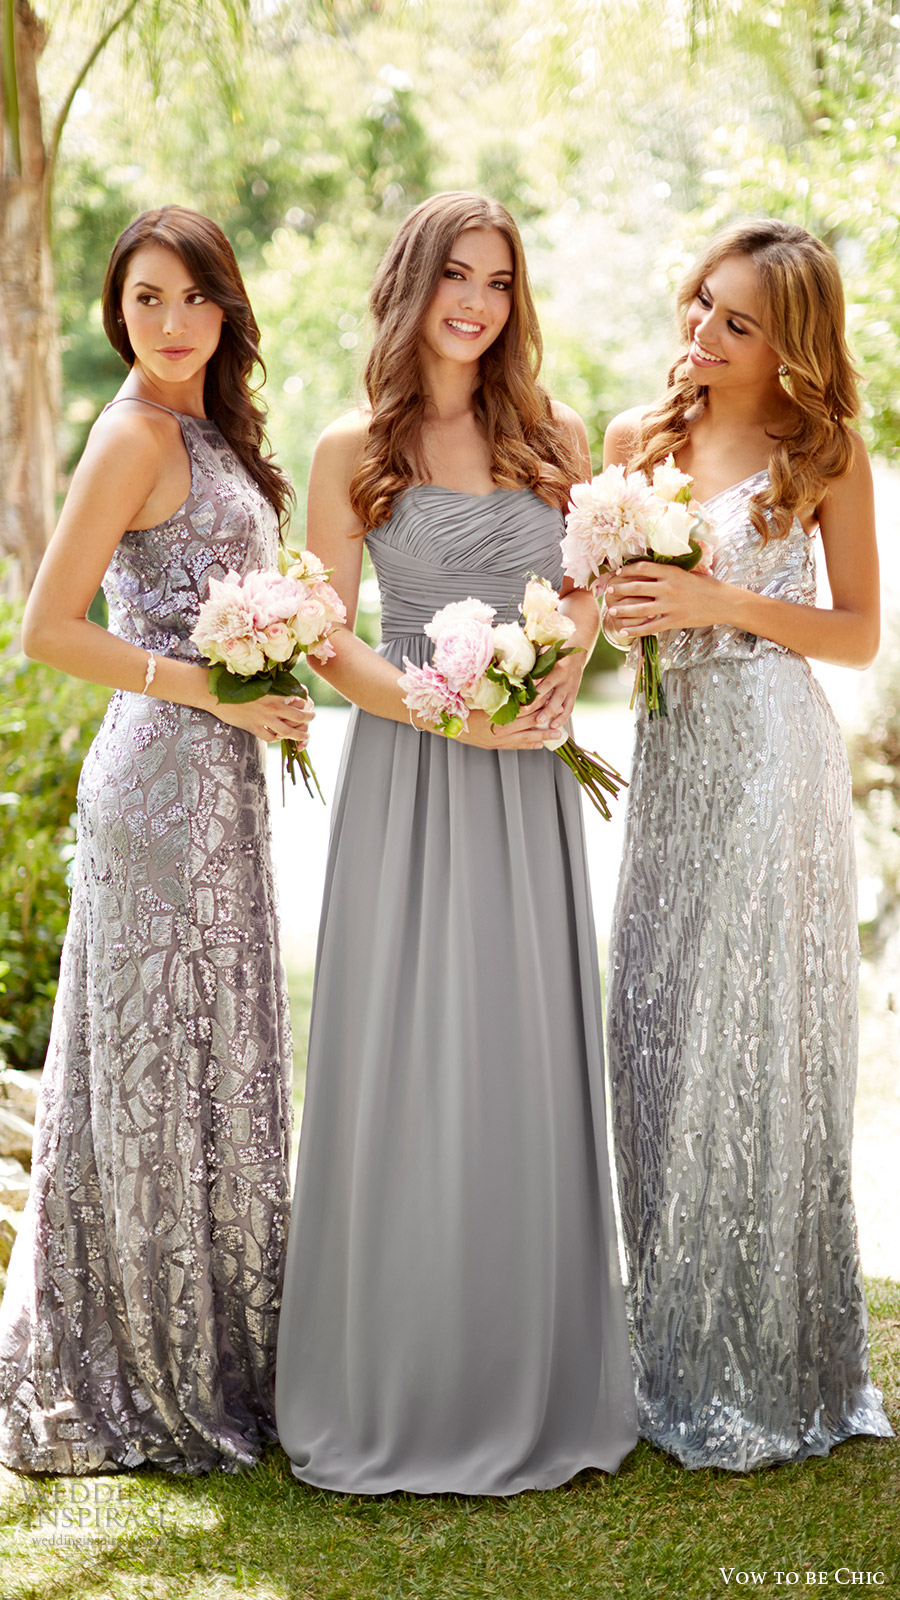 8ec60809461 vow to be chic 2016 metallics silver grey gray bridesmaids bridal party bridesmaid  dresses for rent